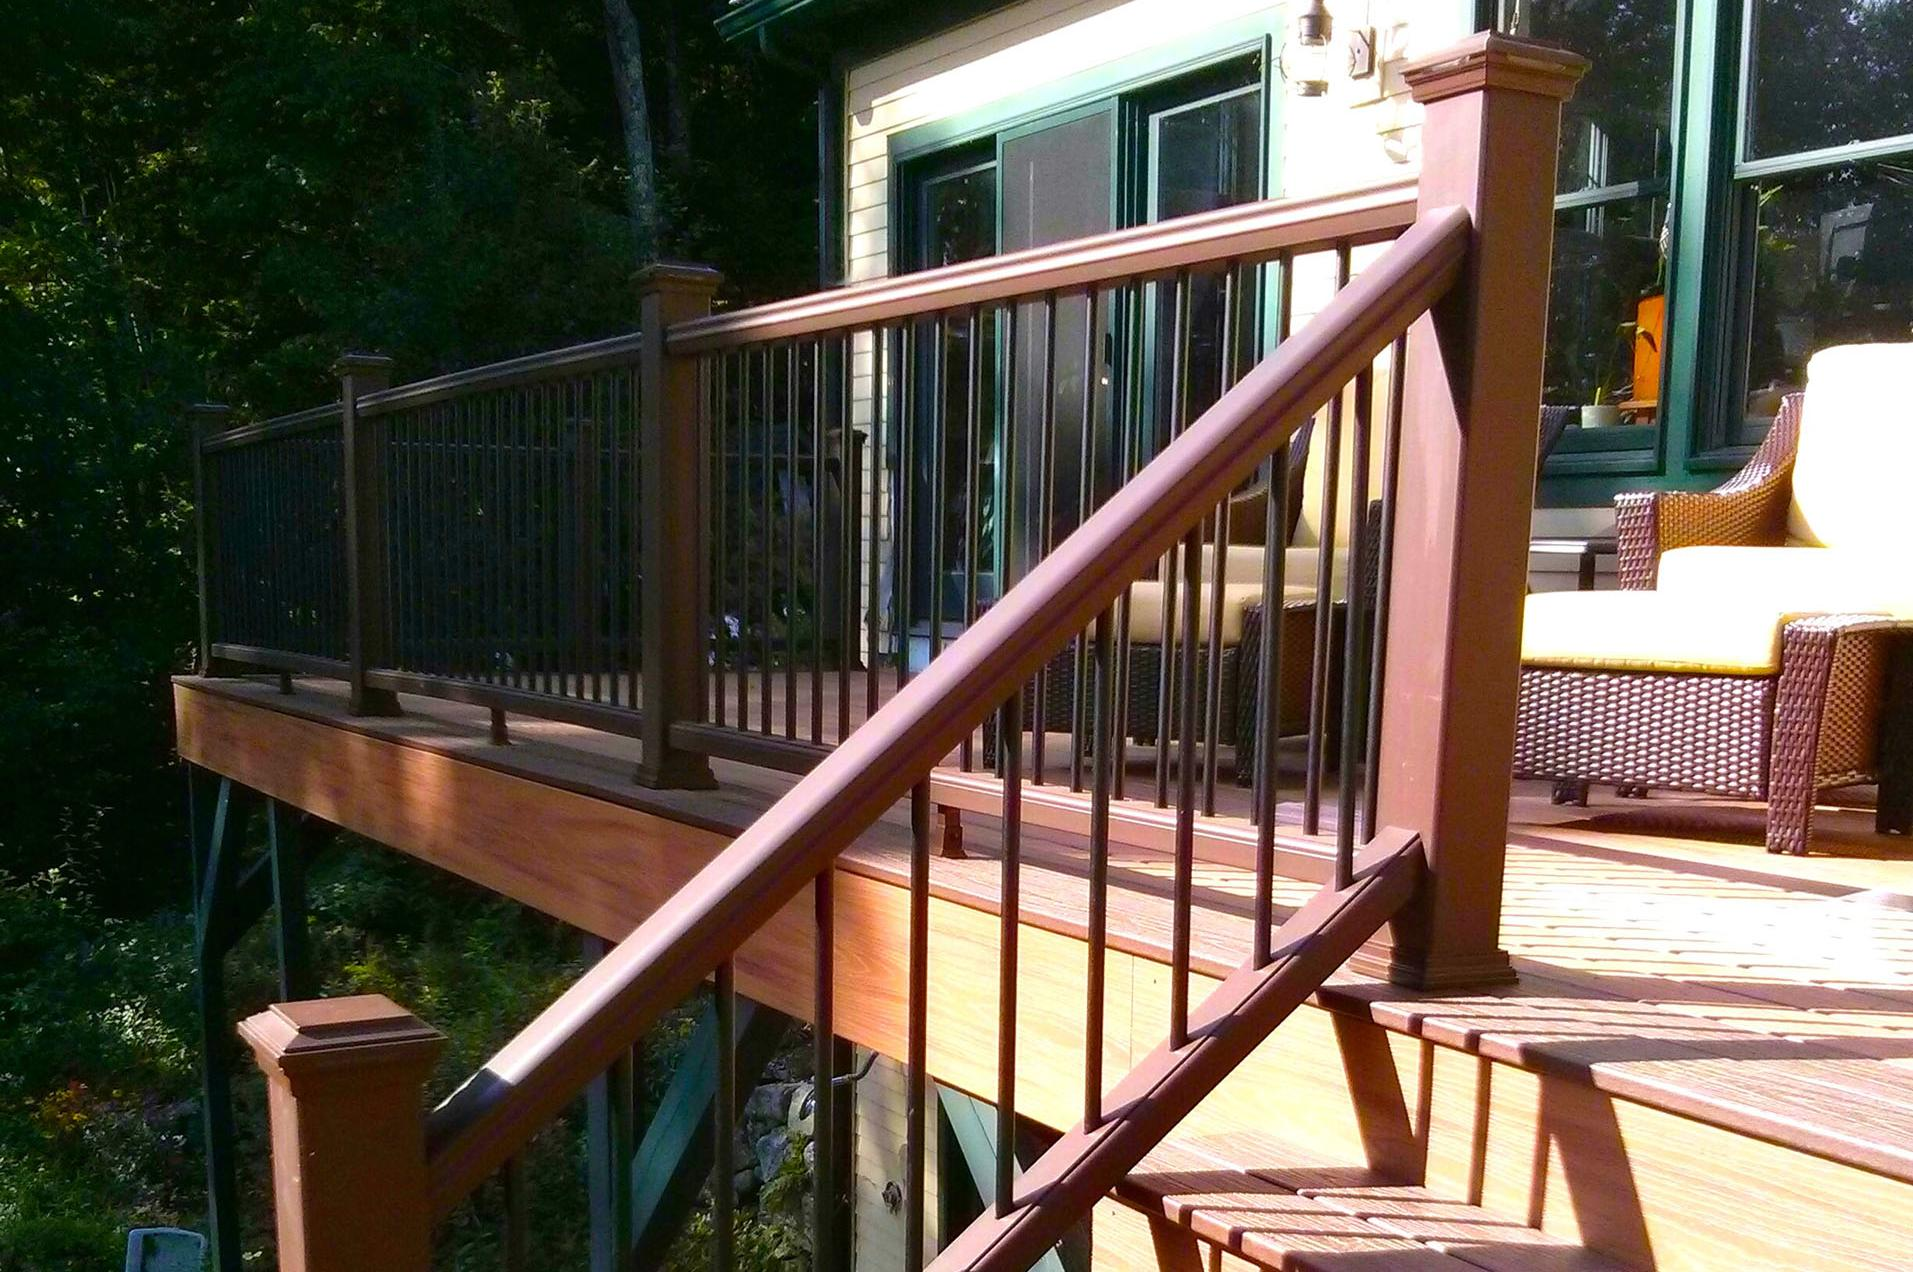 Beau This Deck Stair Railing Was Made Using Great Skill And Modular Parts  Designed To Fit Together